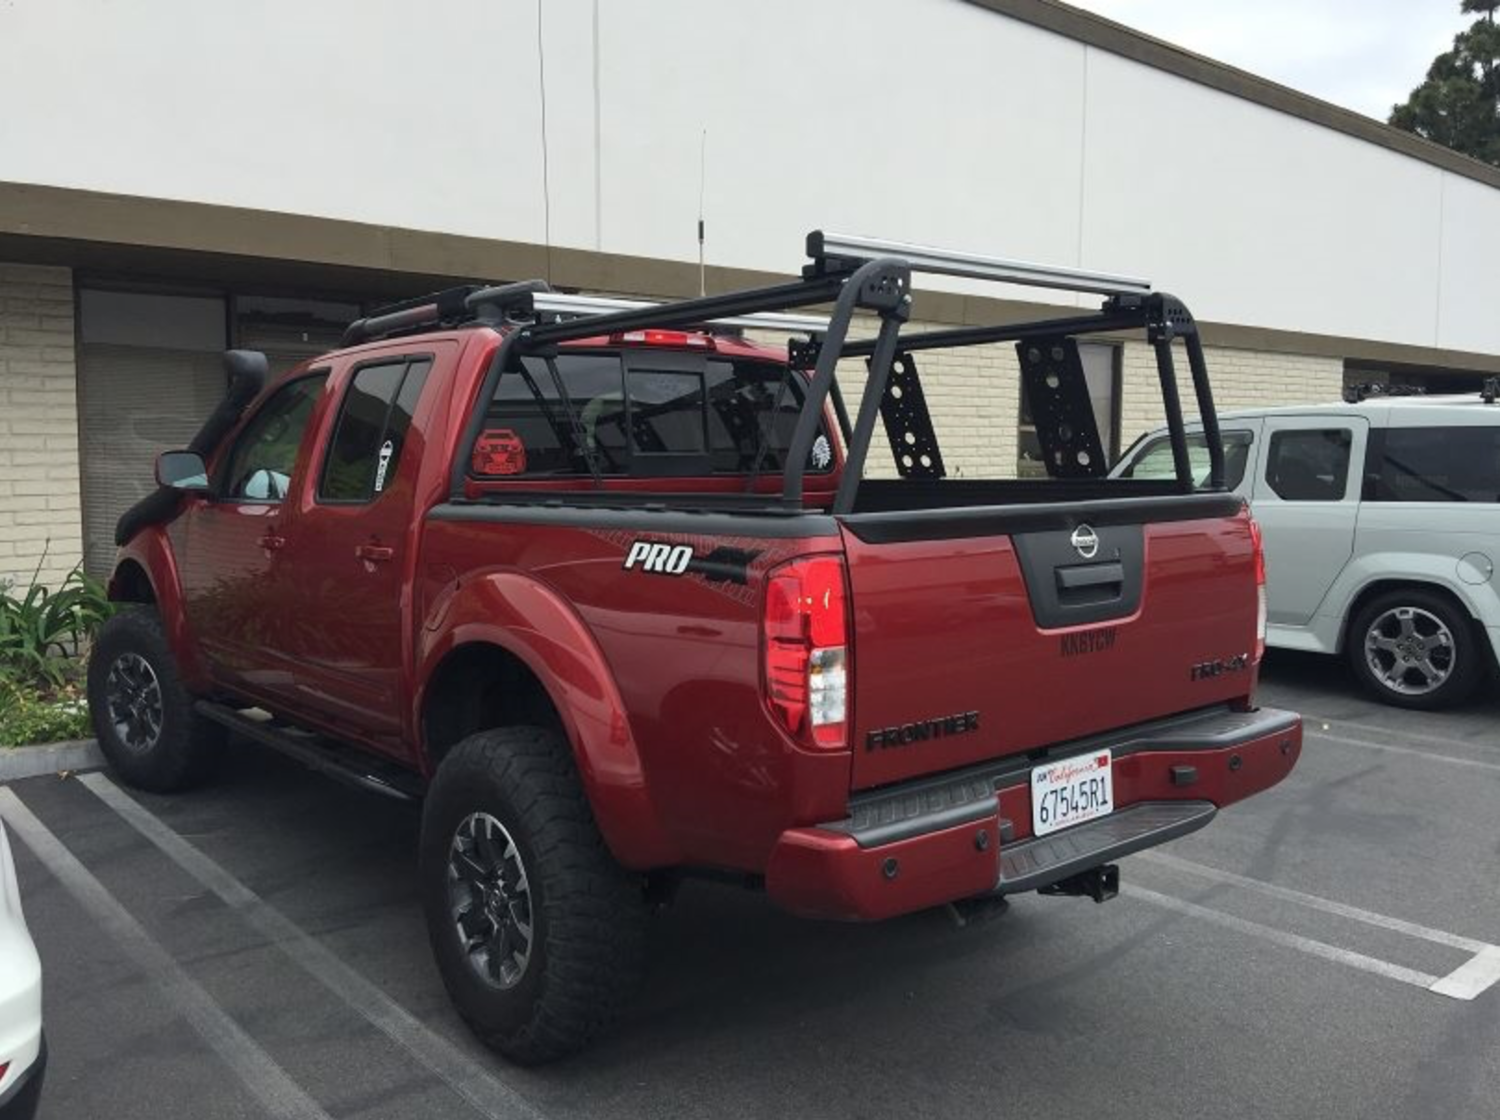 ACTIVE CARGO SYSTEM - 10-10 - NISSAN FRONTIER (MUST HAVE UTILI-TRACK  INSTALLED) — EKS TOO